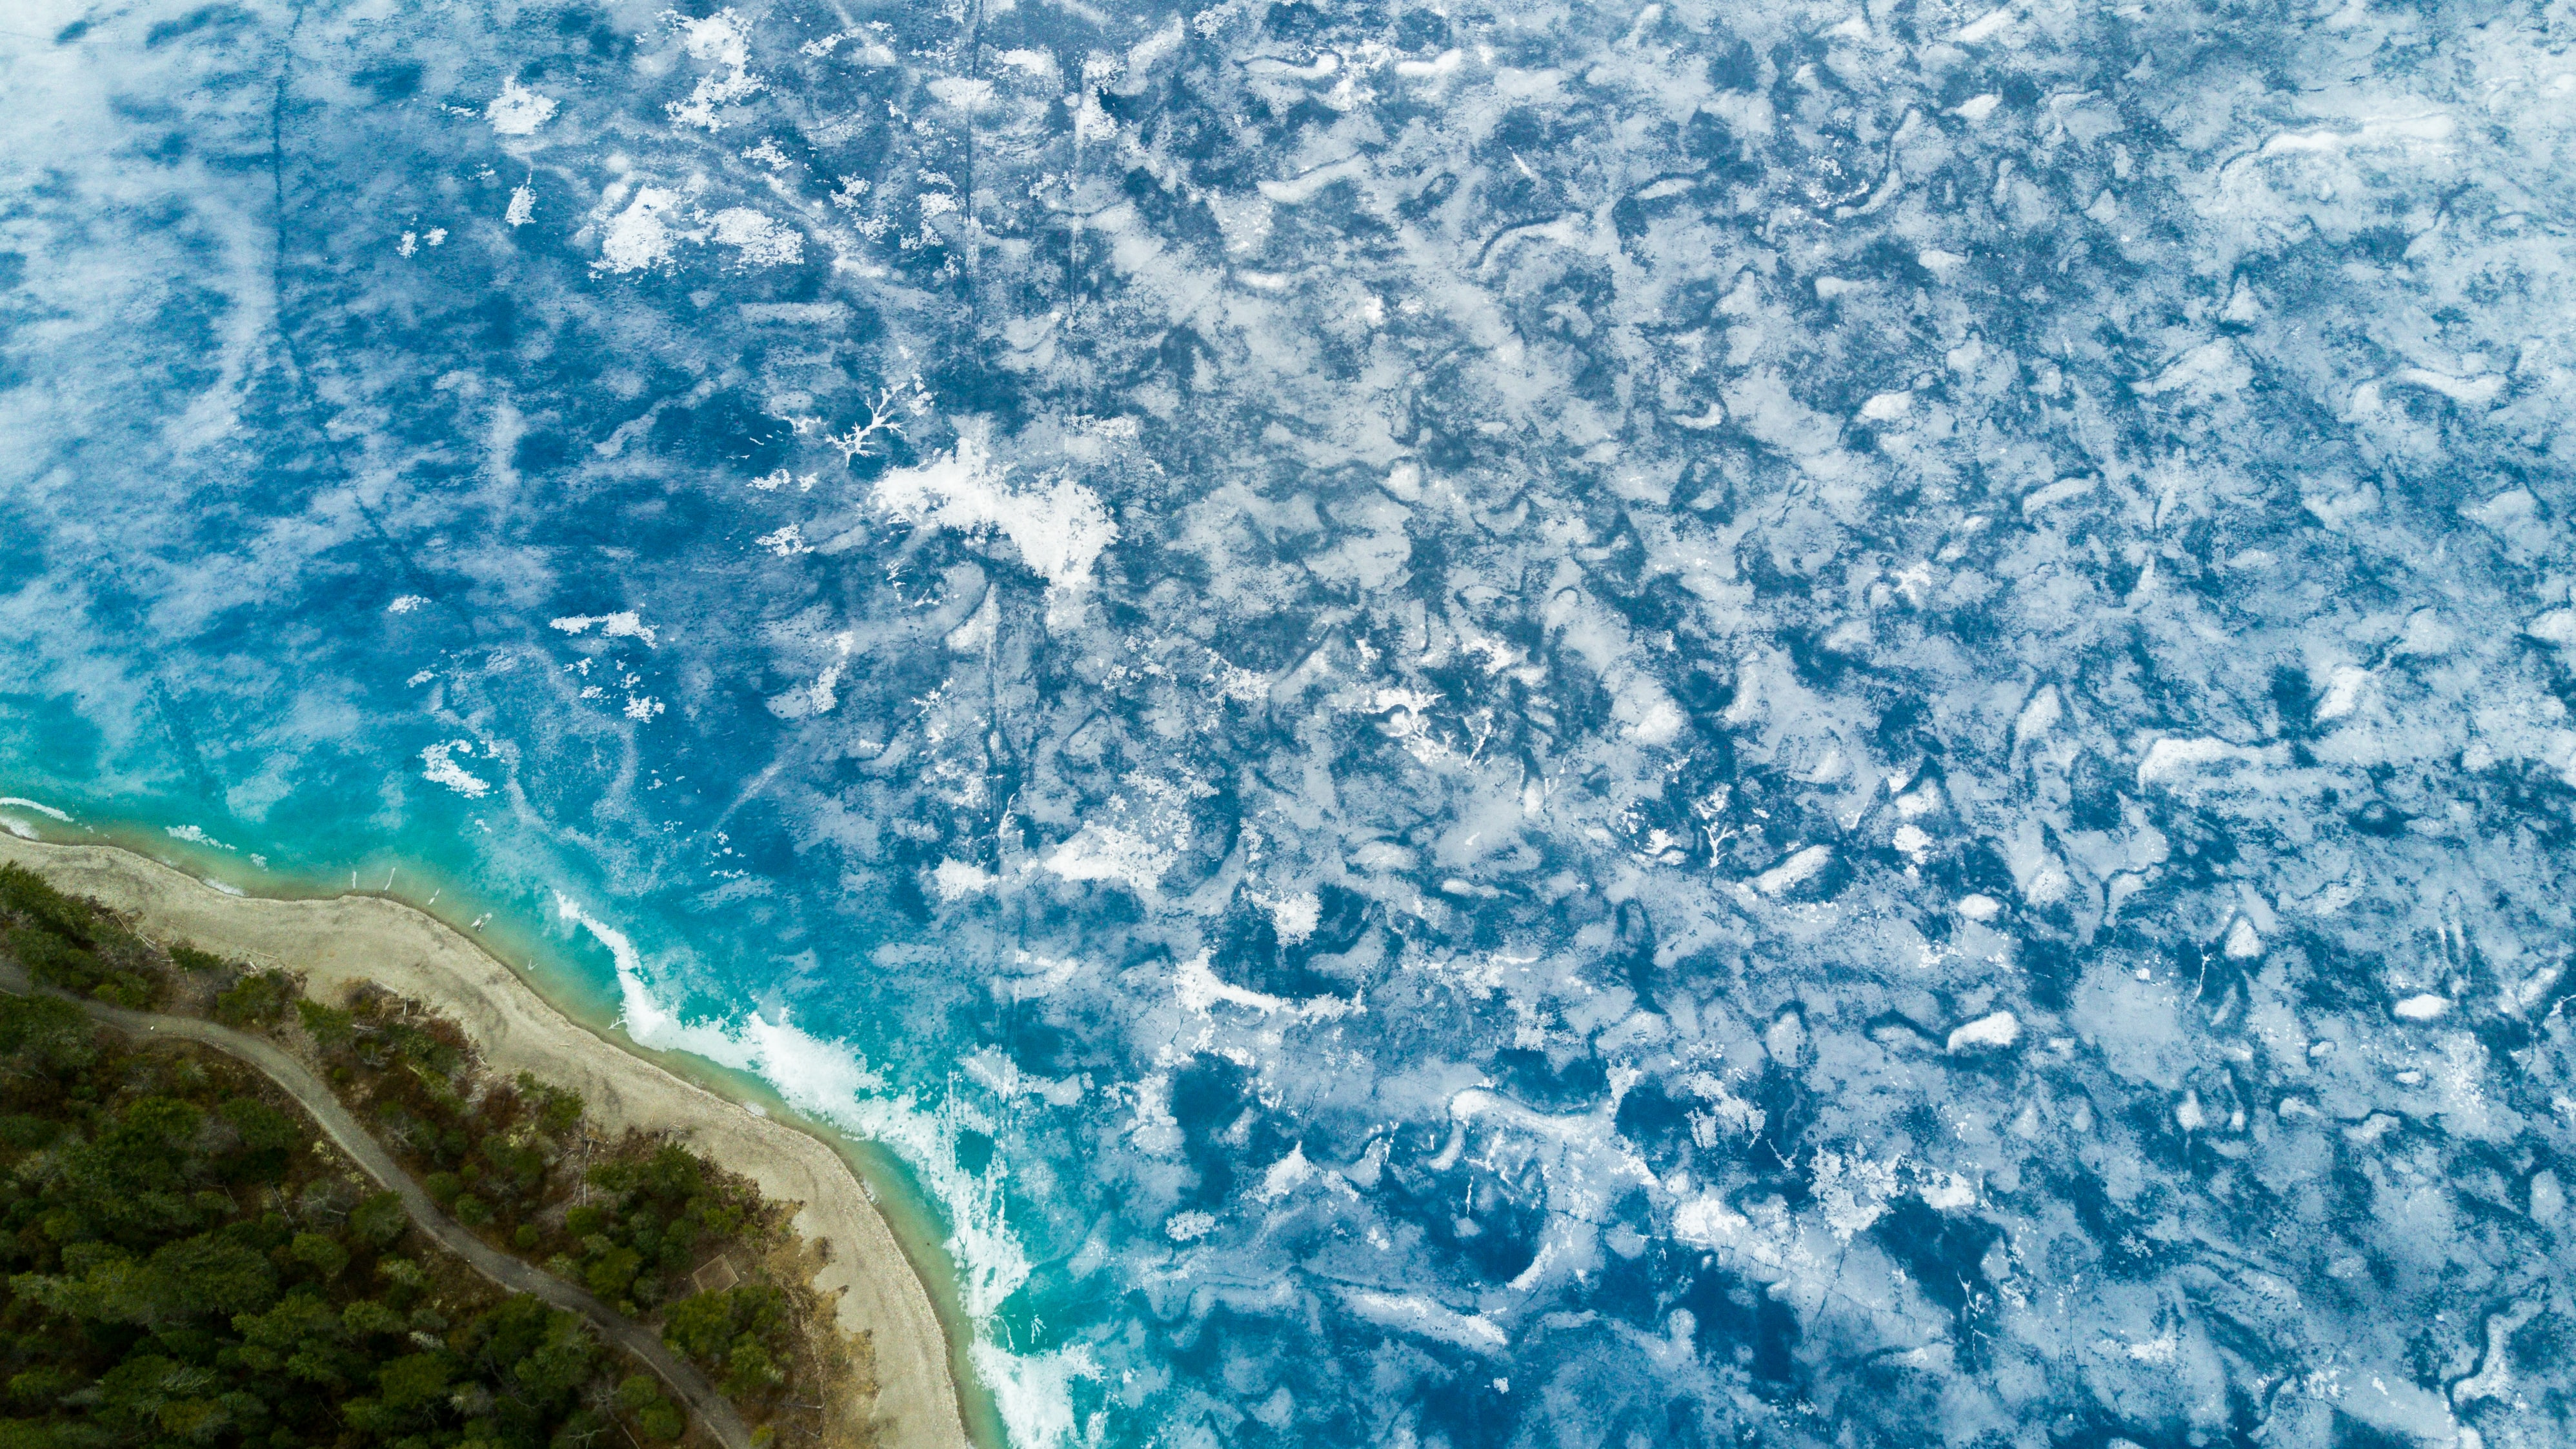 bird's-eye view photography of island and ocean